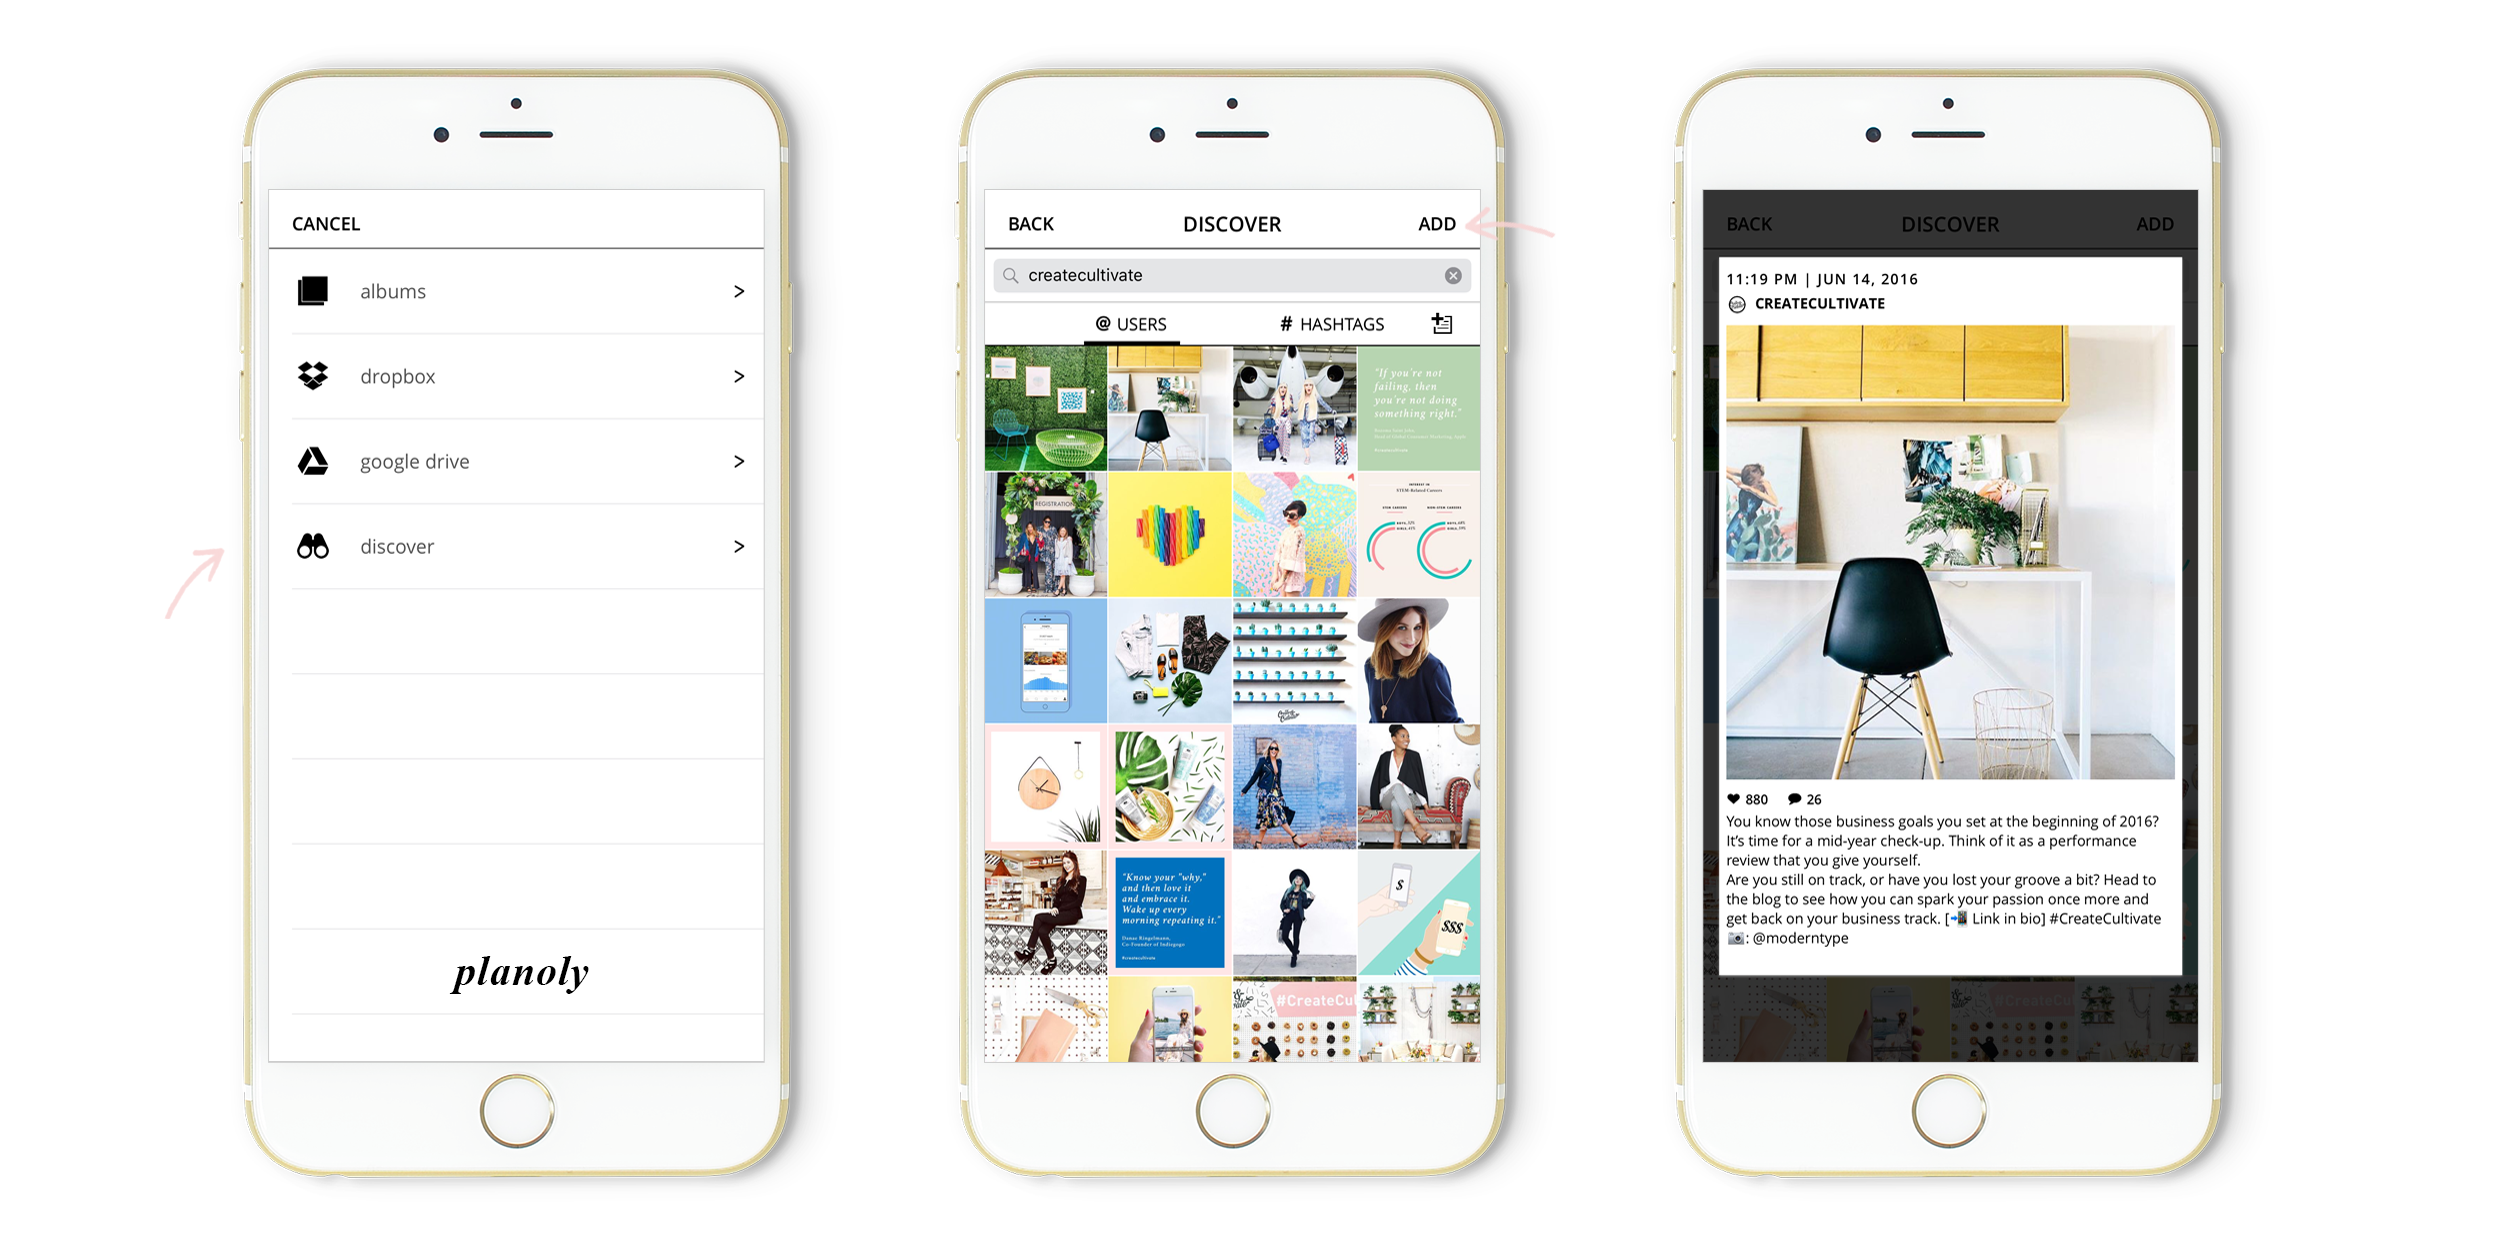 Discover user generated Instagram content on Planoly iOS app